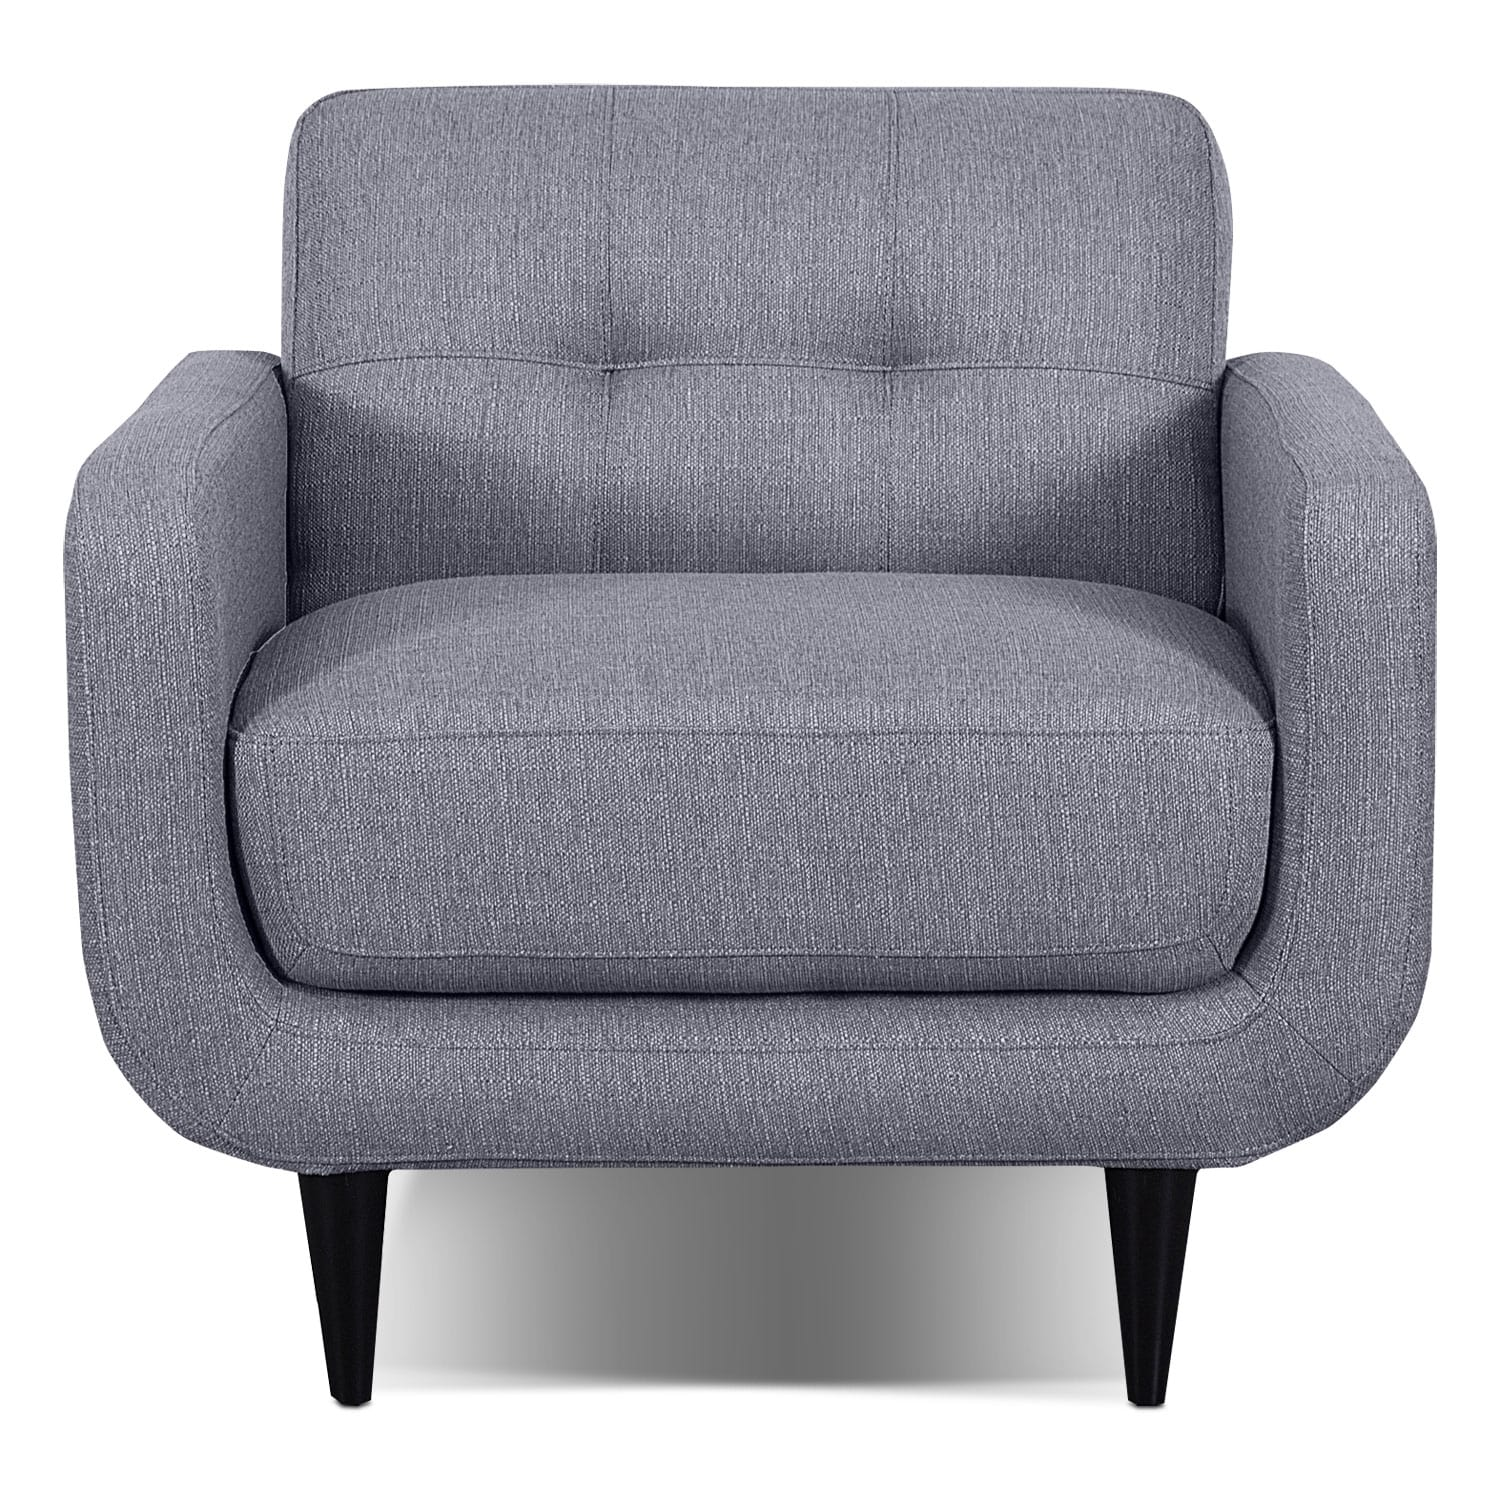 Galo Linen-Look Fabric Chair - Granite